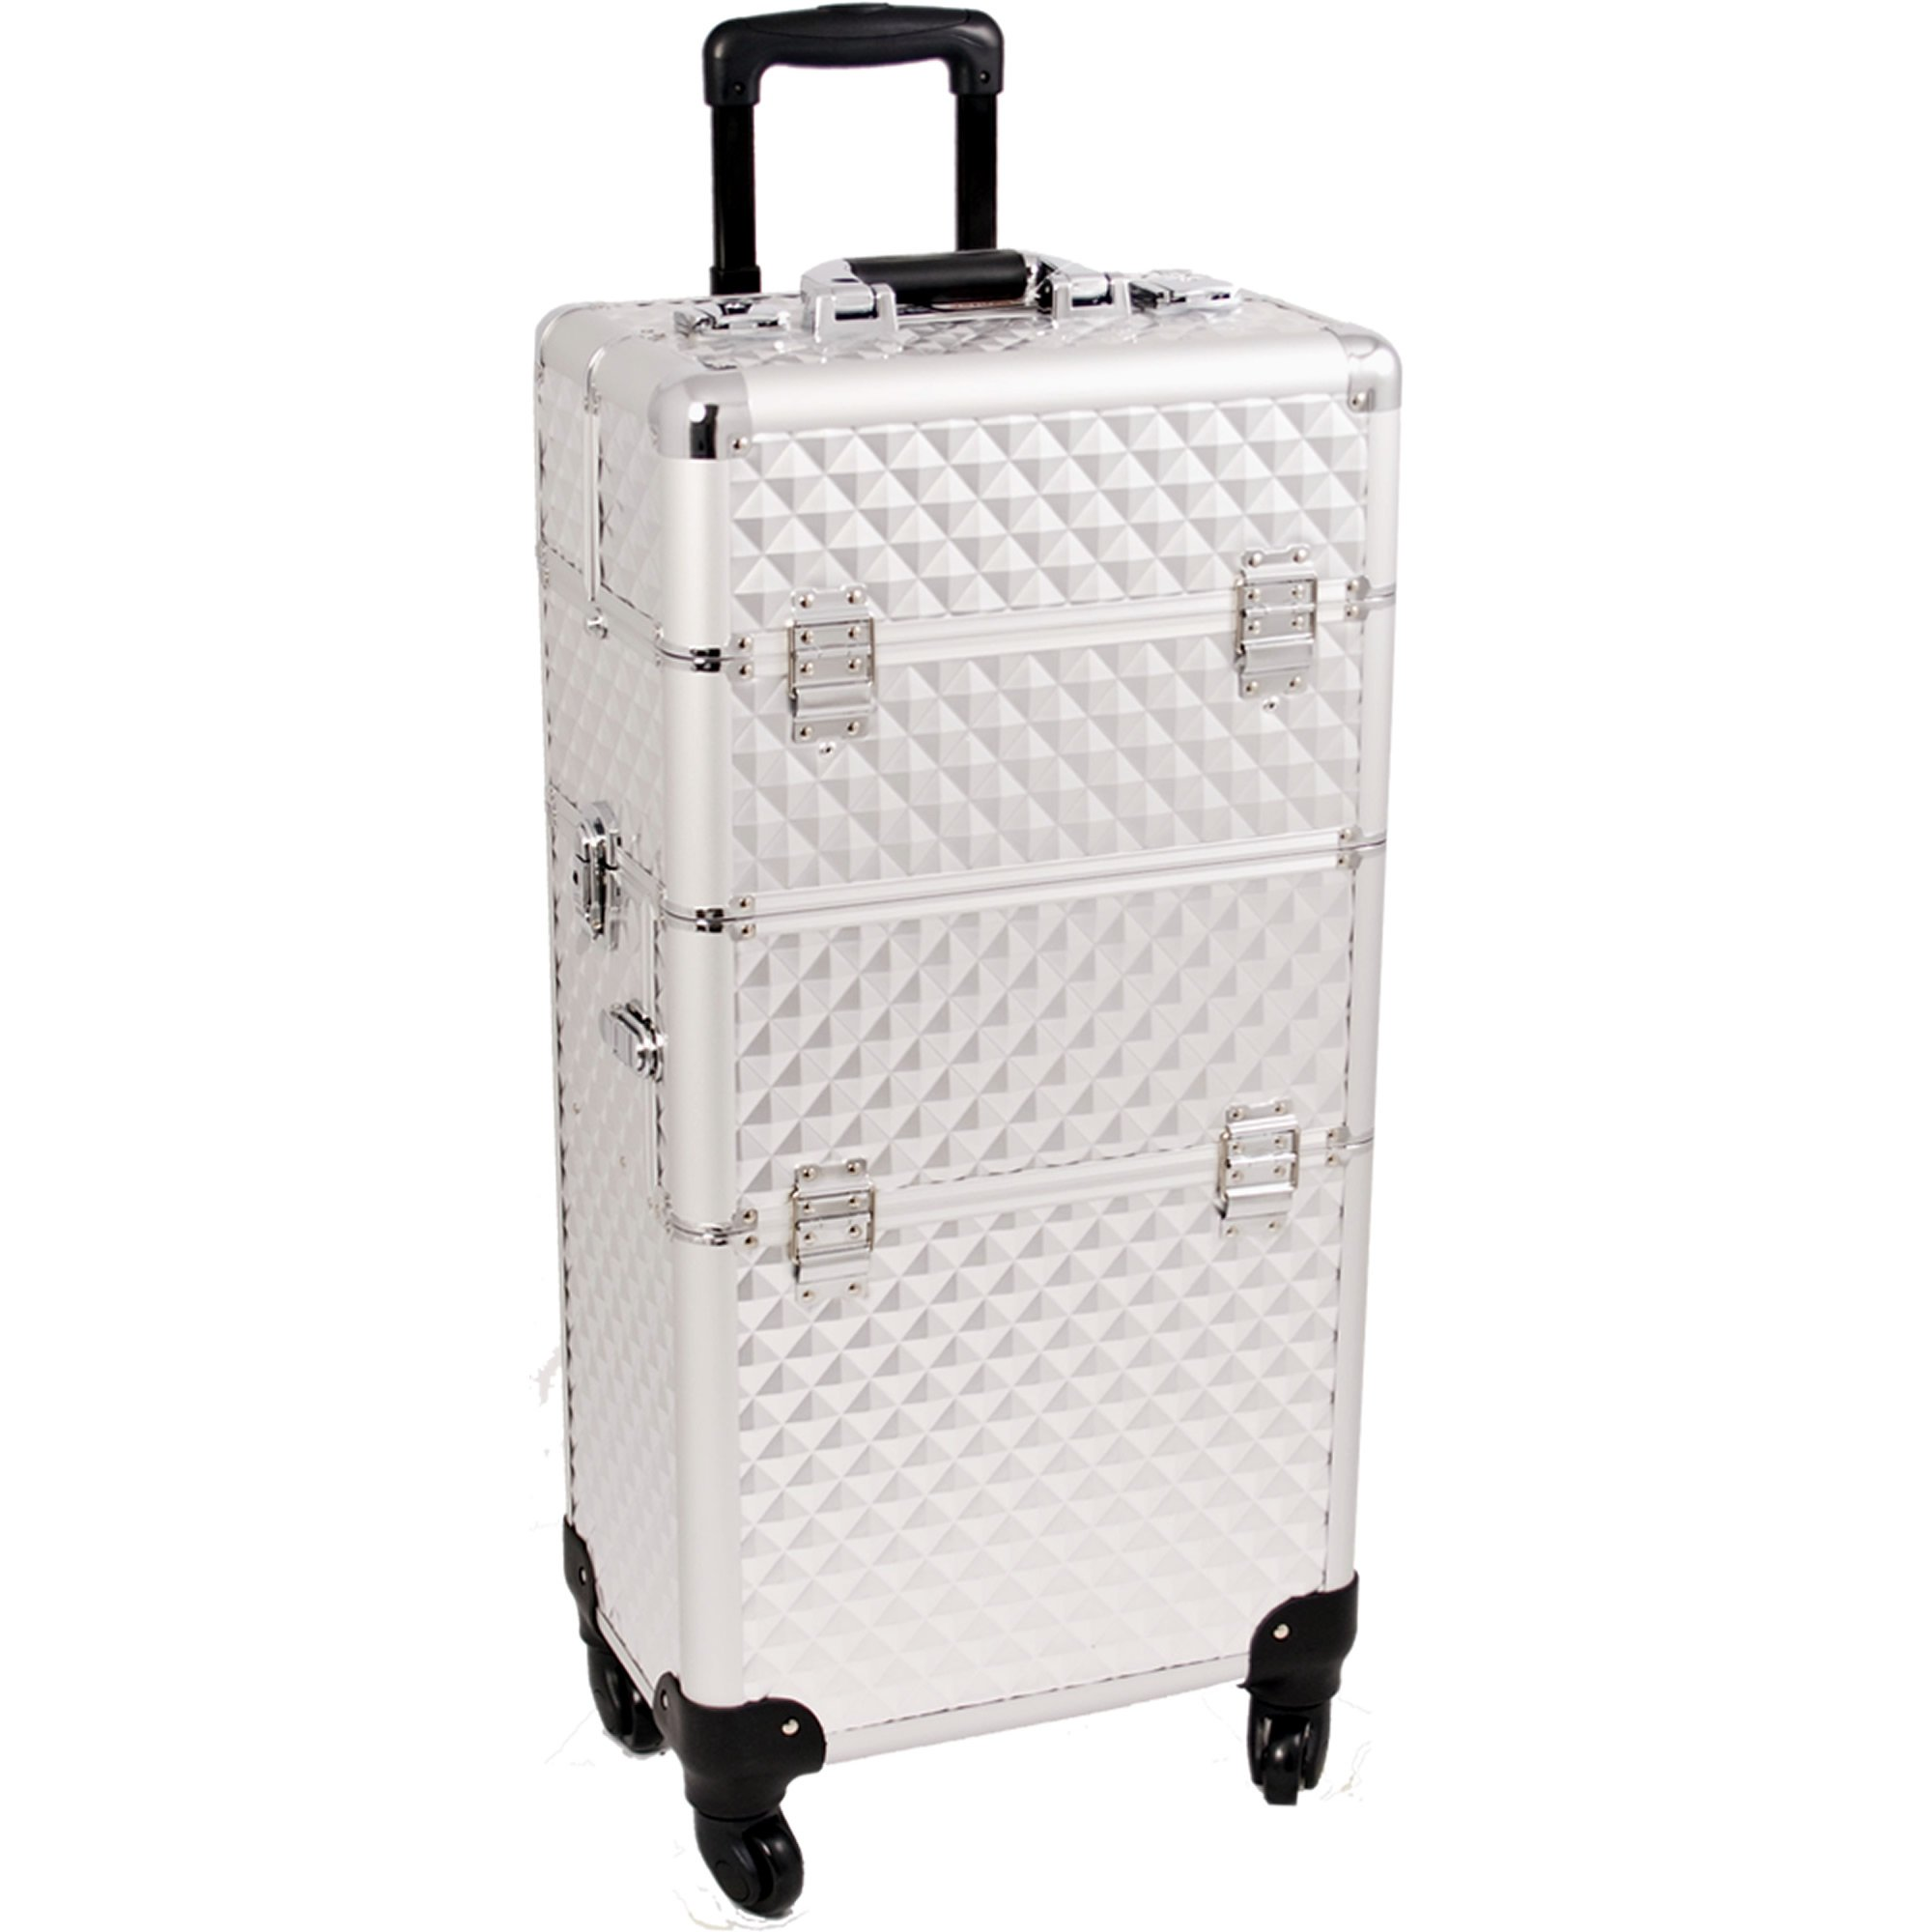 SUNRISE Makeup Case on Wheels 2 in 1 Professional Artist Organizer I3161, 4 Slide and 1 Removable Tray, 4 Wheel Spinner, Silver Diamond